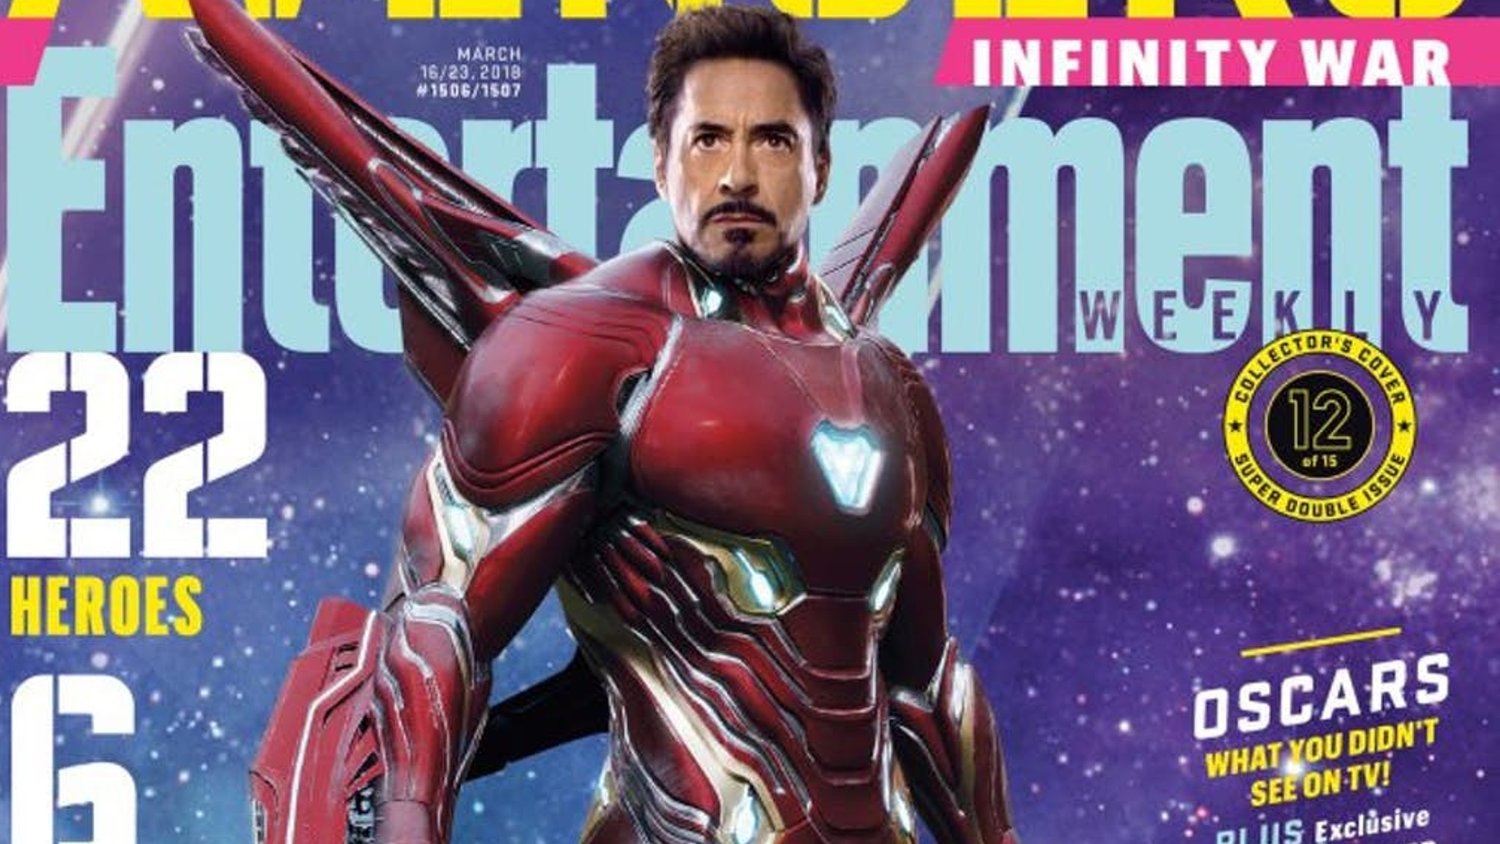 22 AVENGERS: INFINITY WAR Characters Featured on 15 EW